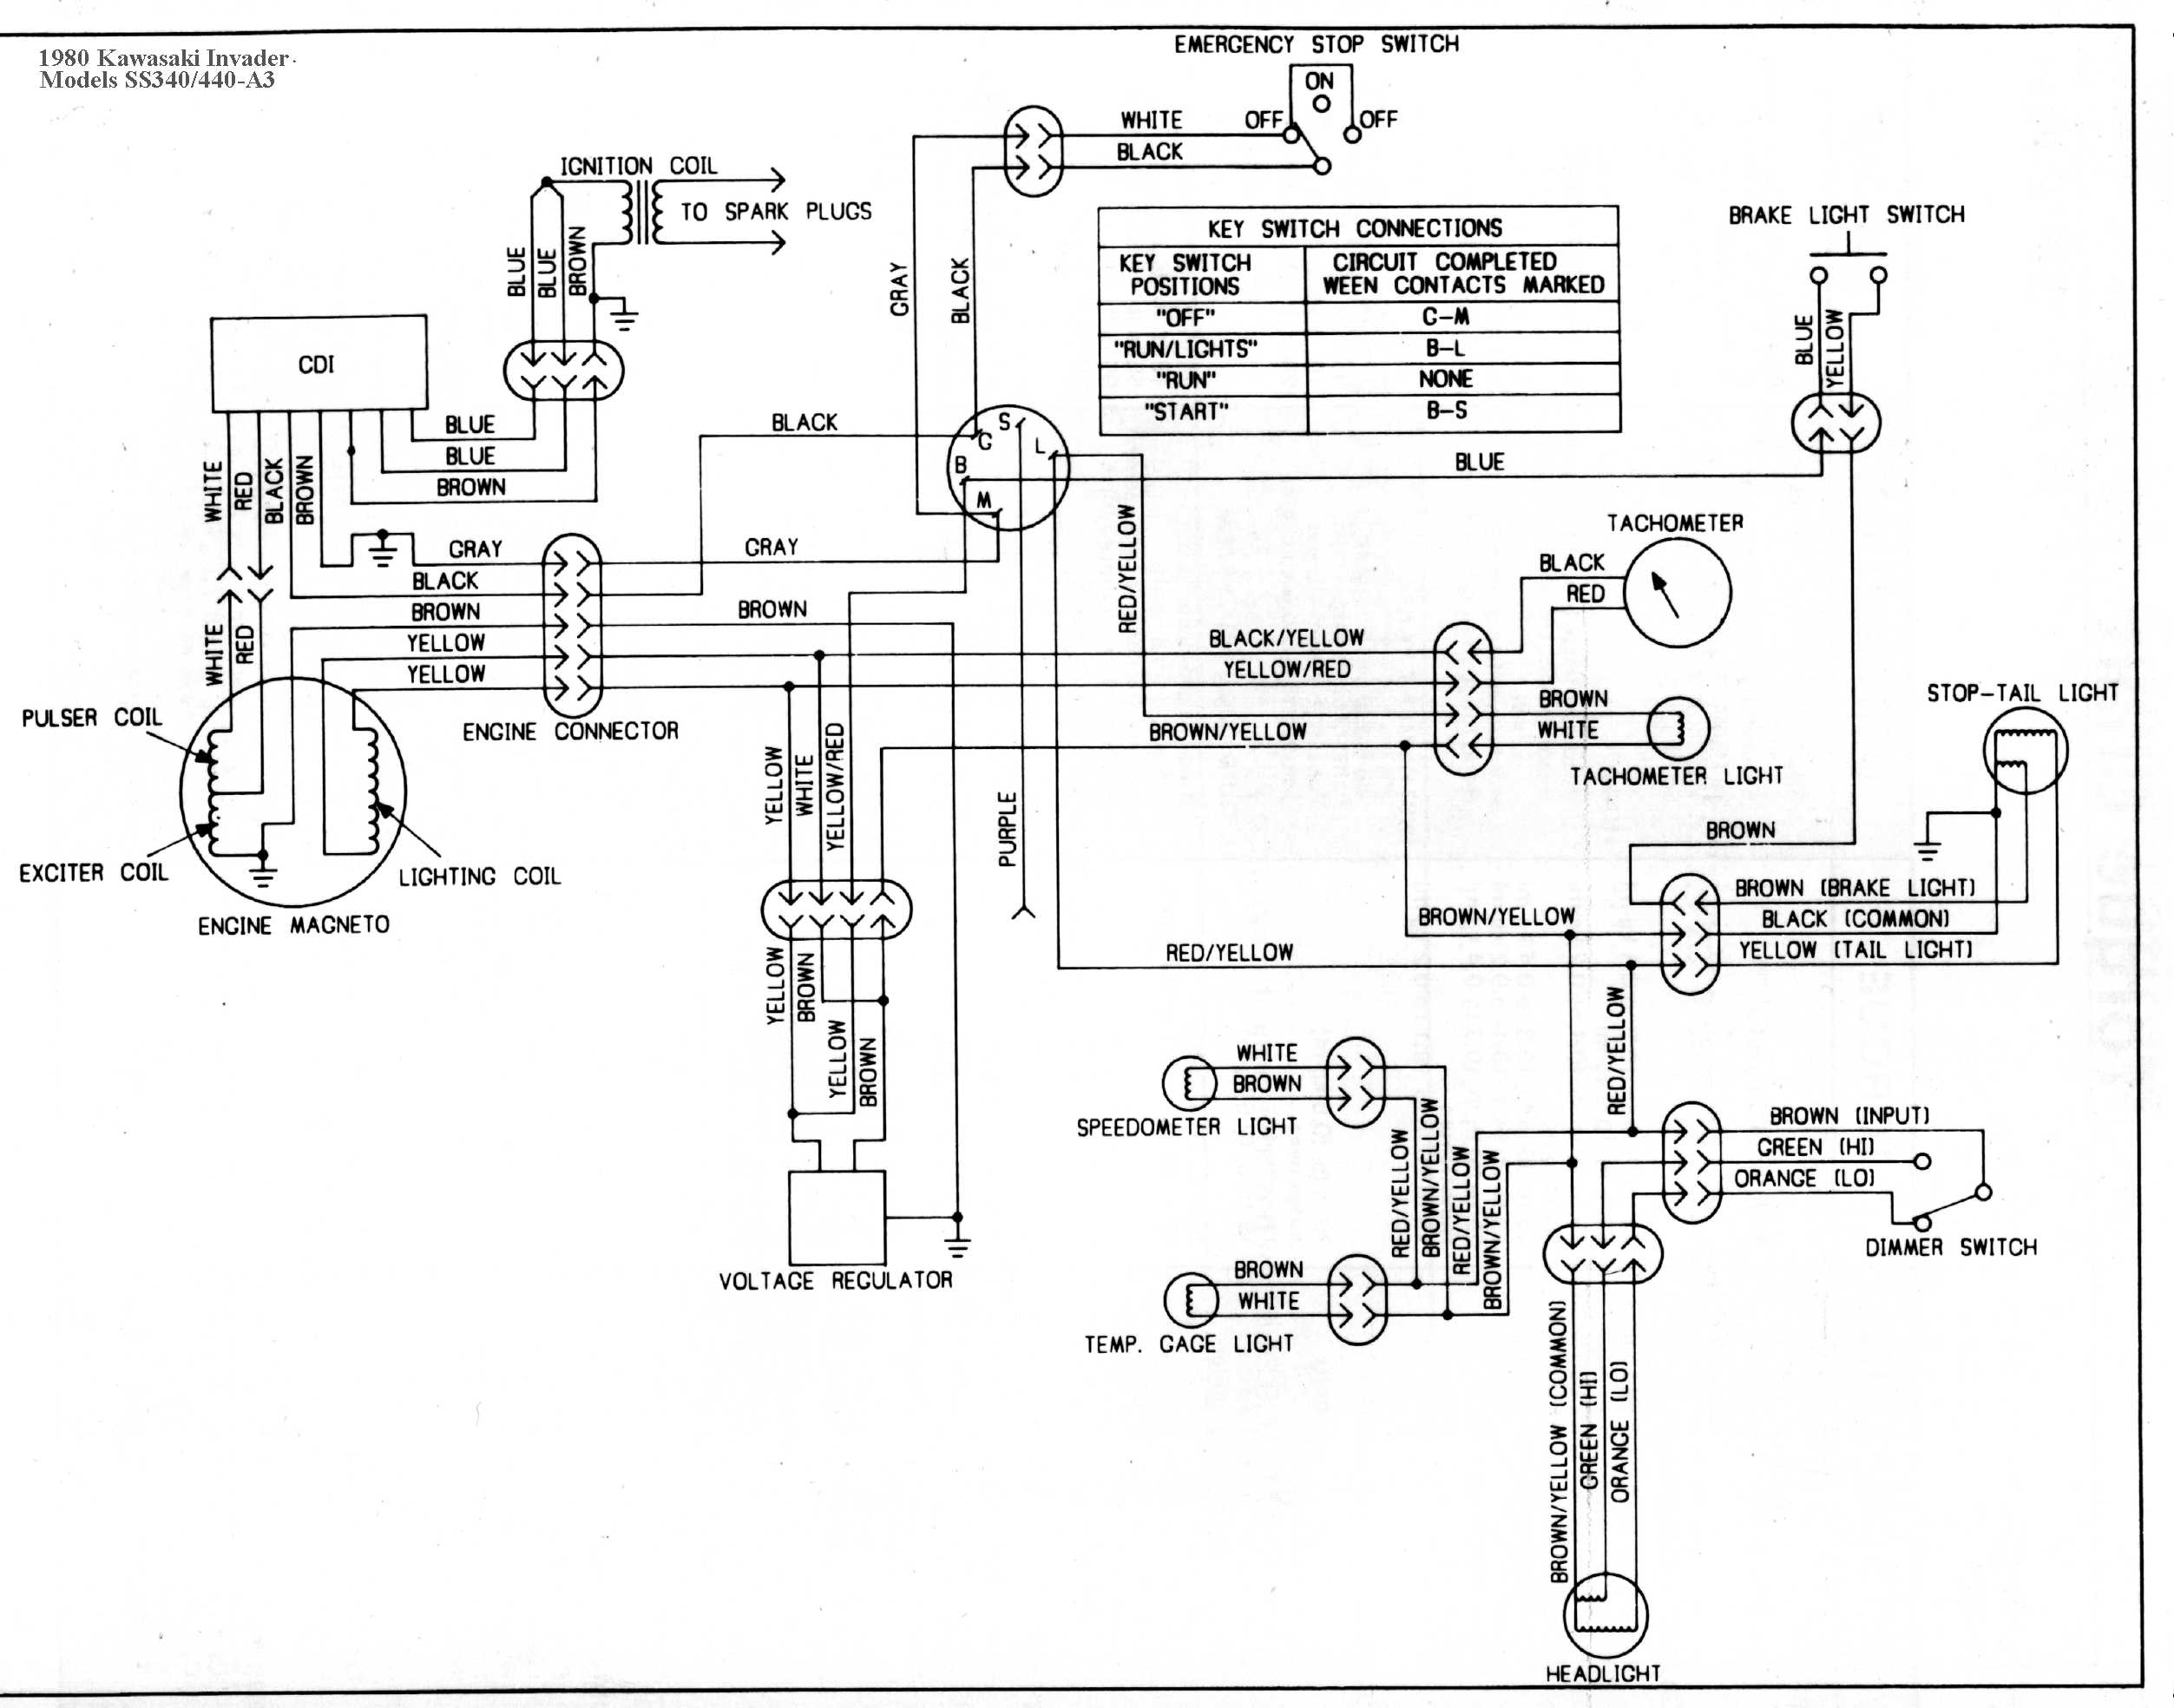 440 snowmobile engine wiring diagram trusted wiring diagram u2022 rh soulmatestyle co polaris 120 snowmobile wiring diagram polaris snowmobile electrical wiring diagrams